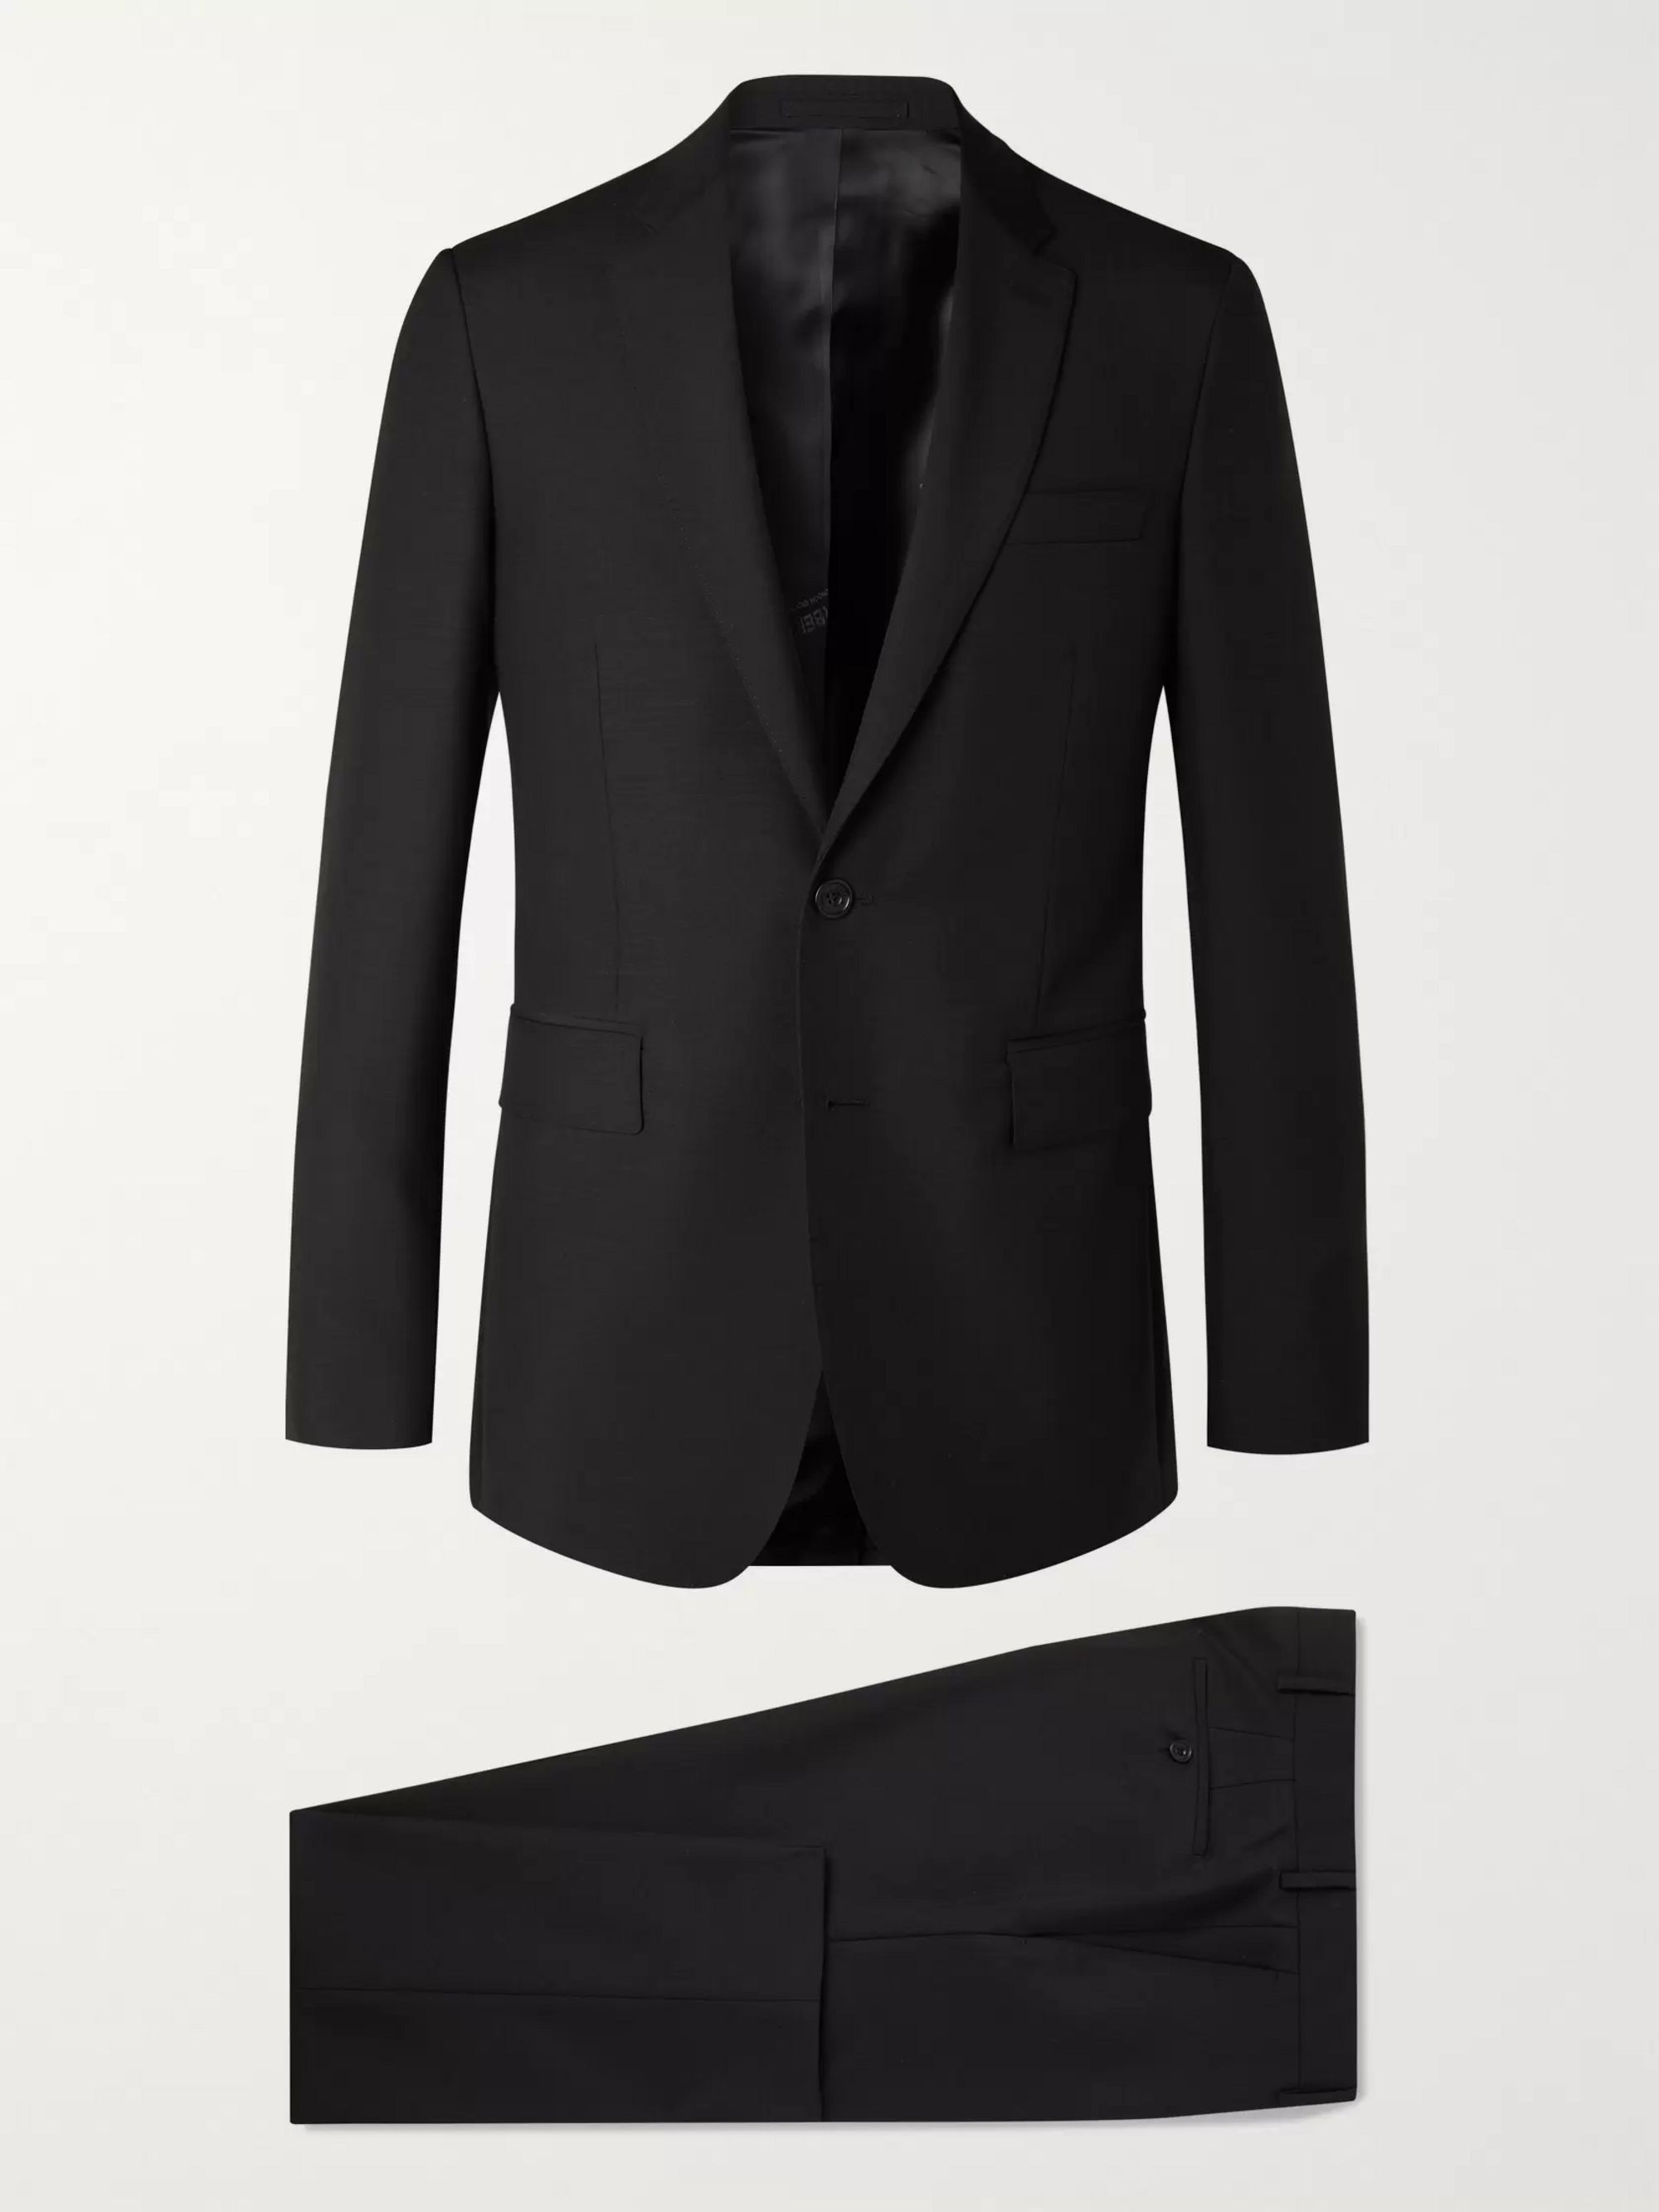 Burberry Slim-Fit Wool and Mohair-Blend Suit